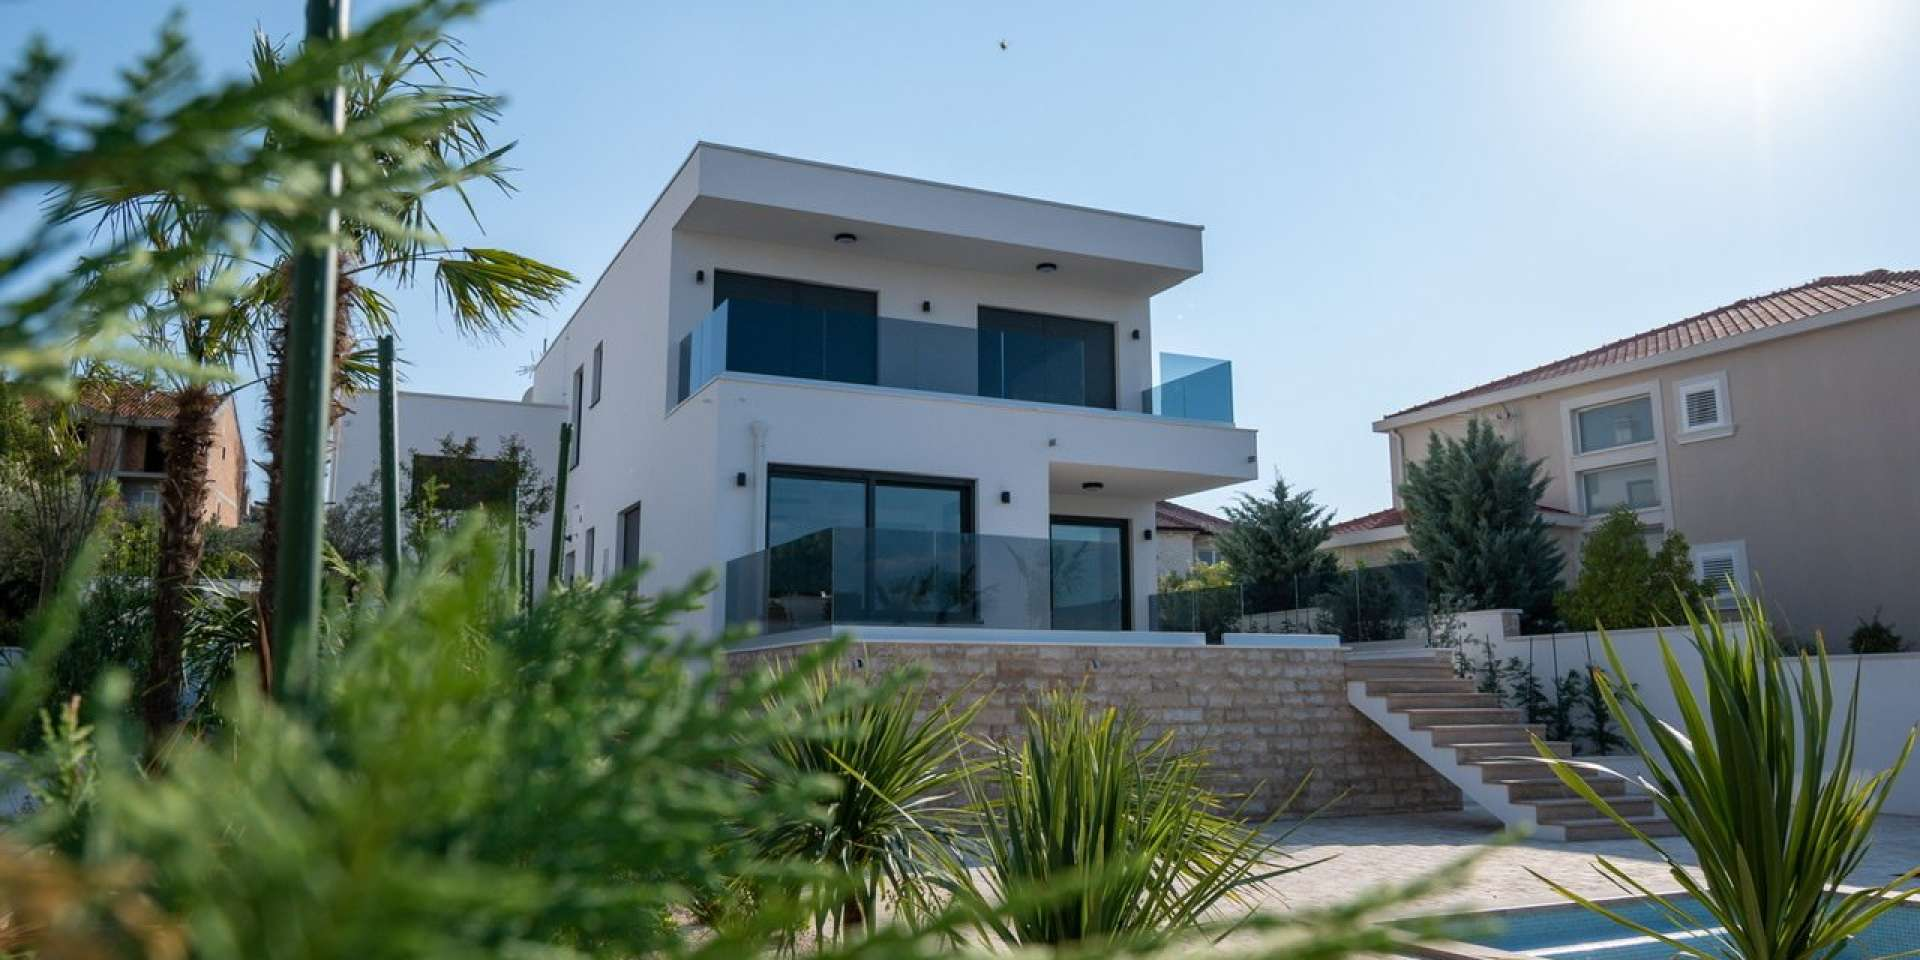 Luxury villa - Murter - swimming pool - sea view 305m2